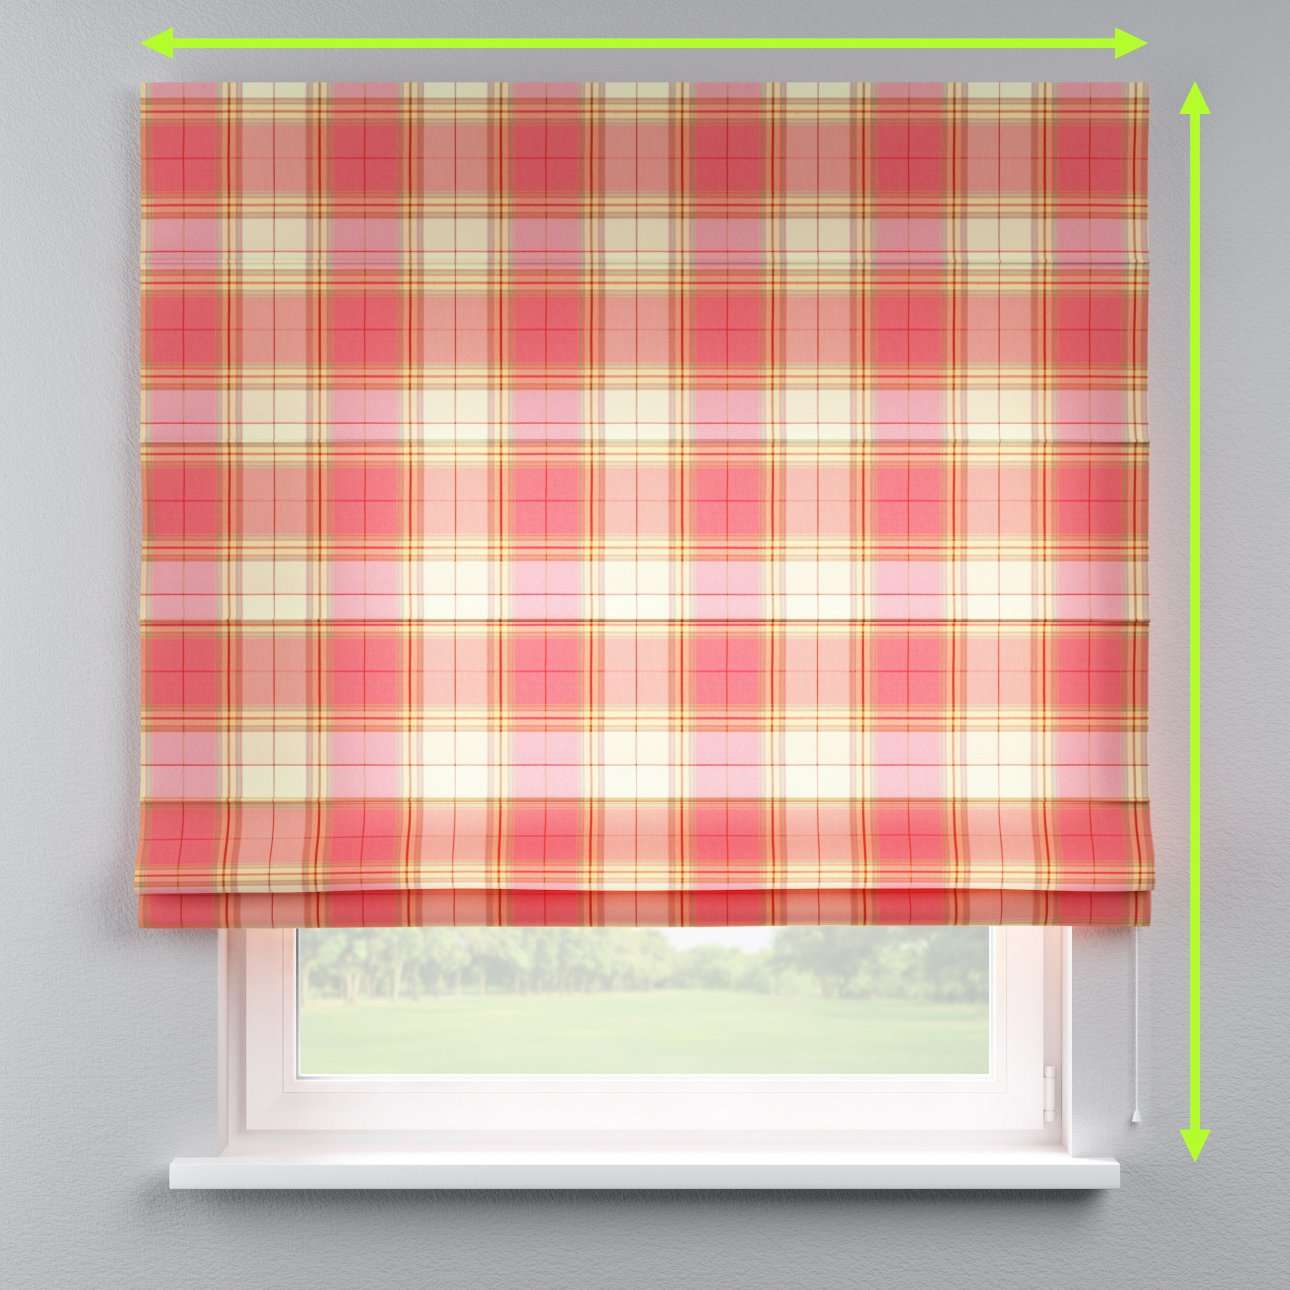 Capri roman blind in collection Bristol, fabric: 125-25